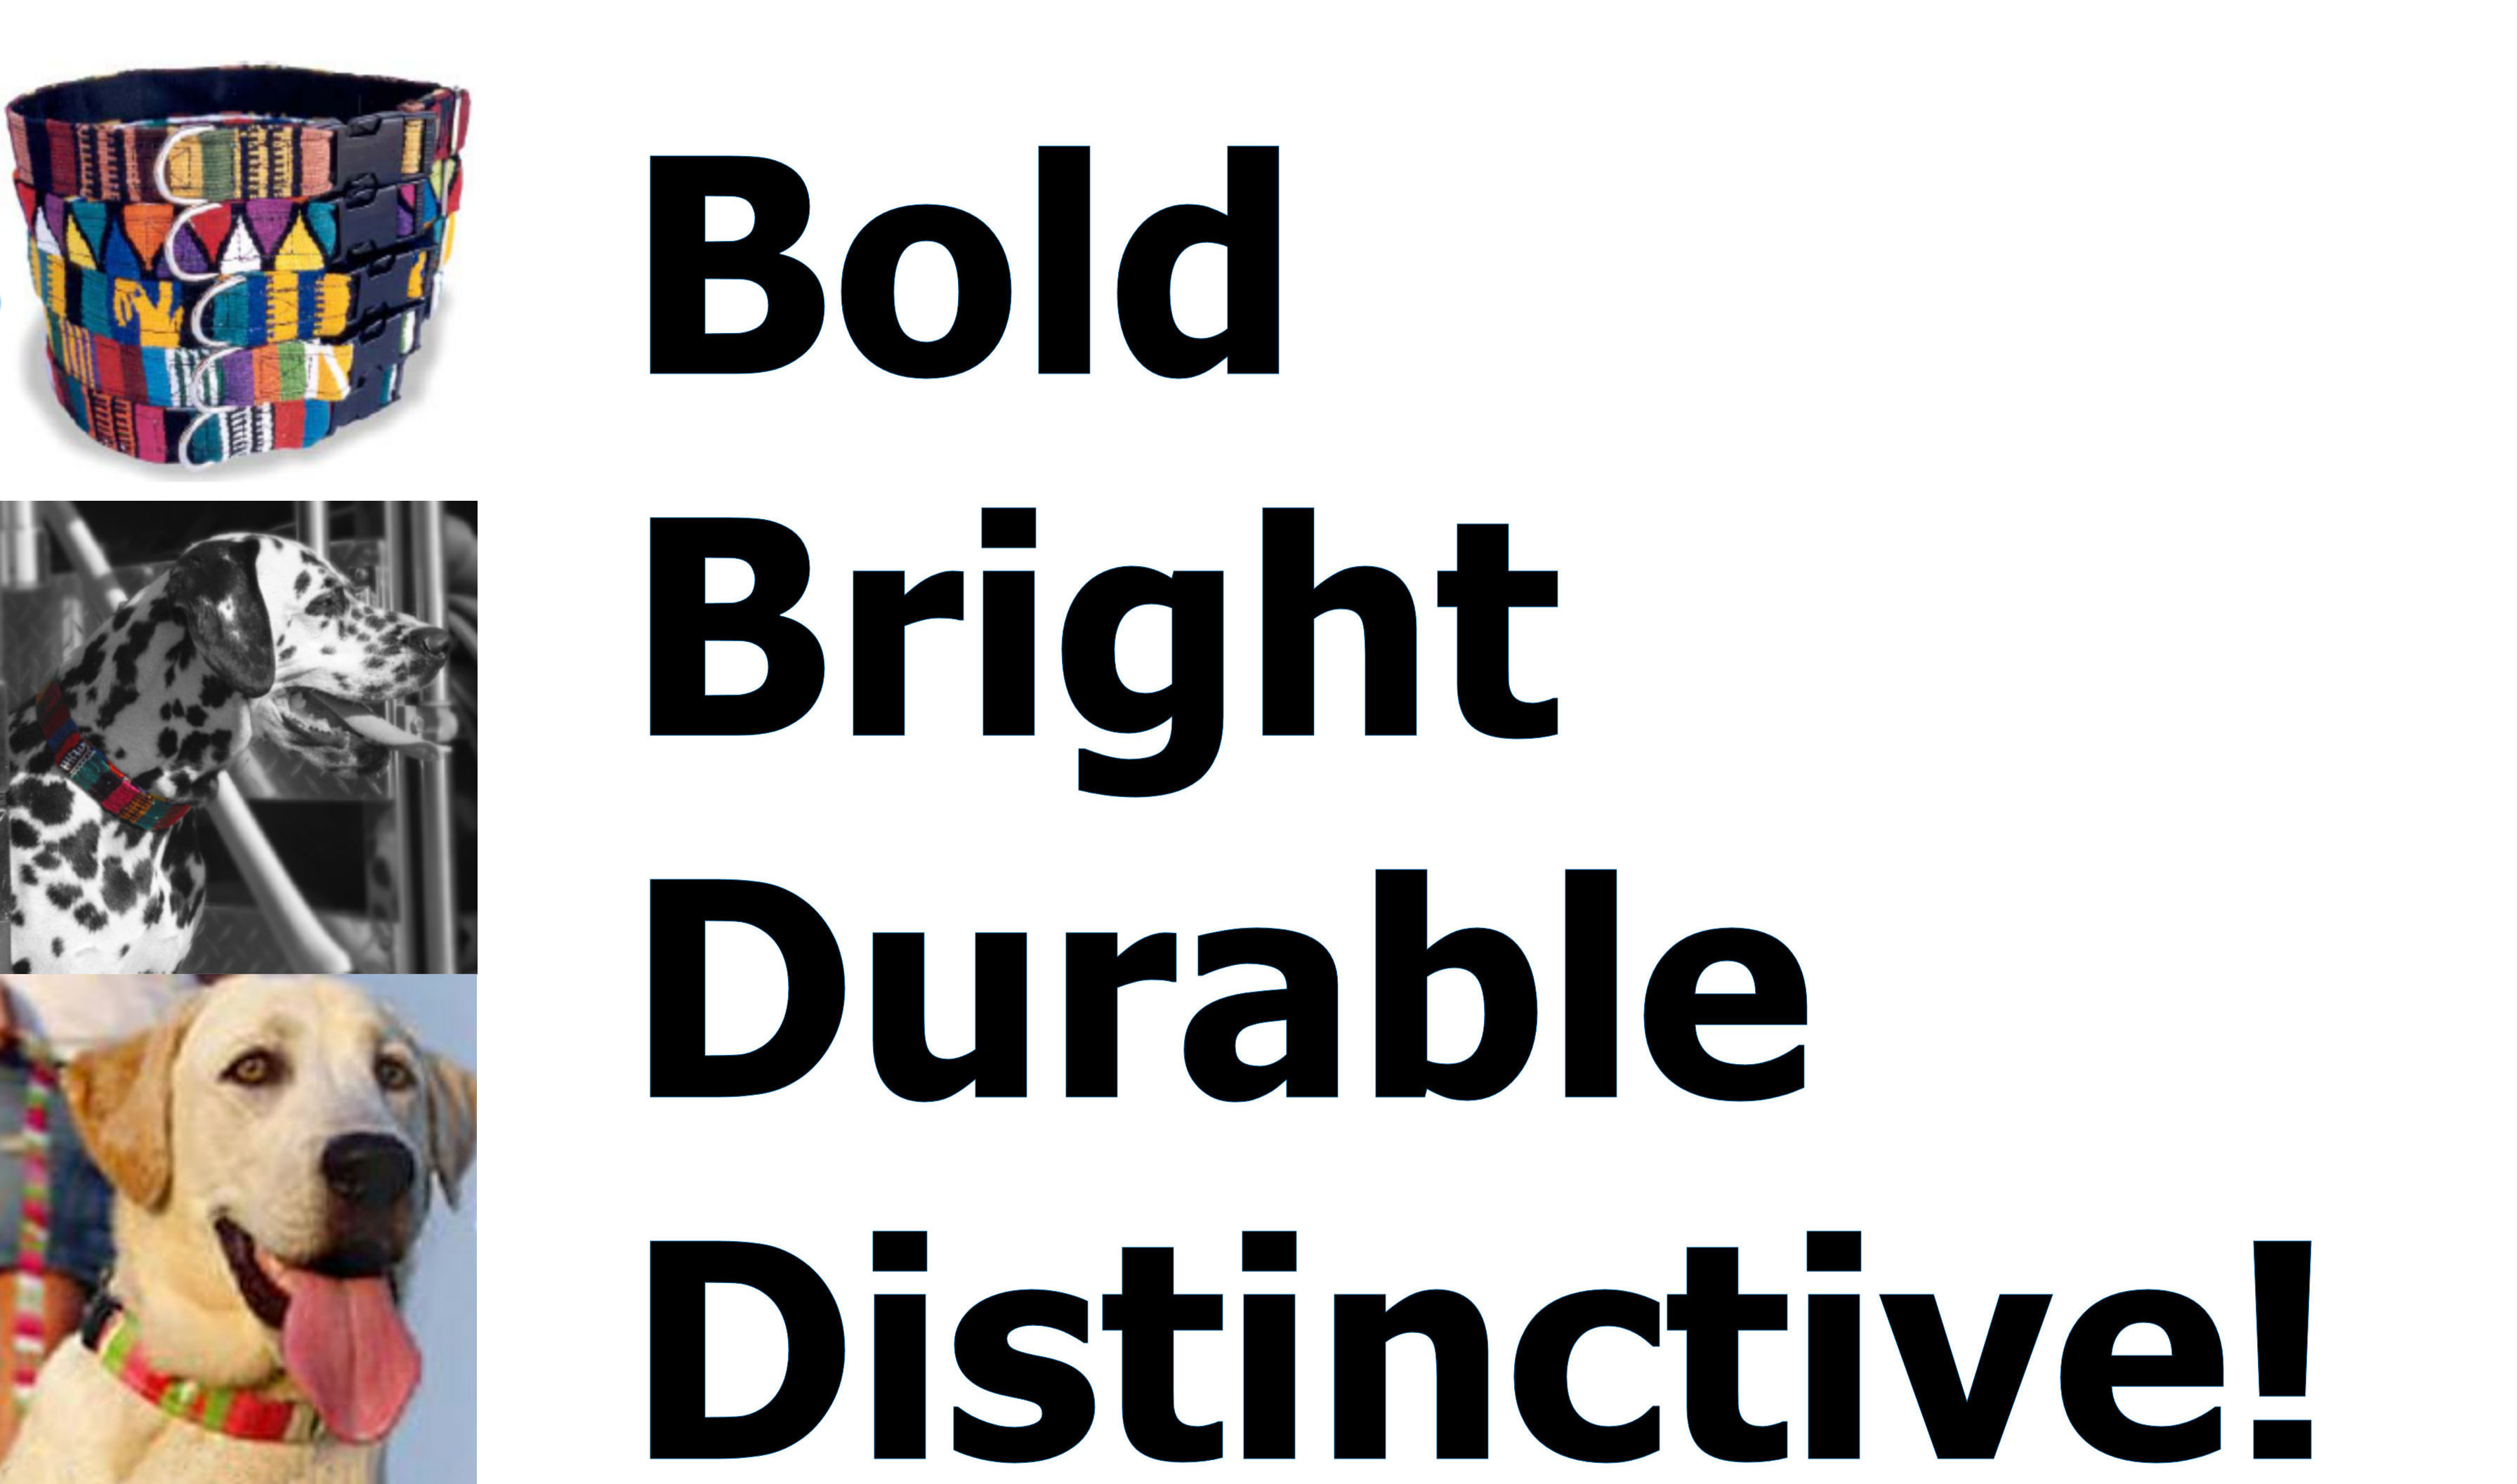 Bold Bright Durable Distinctive